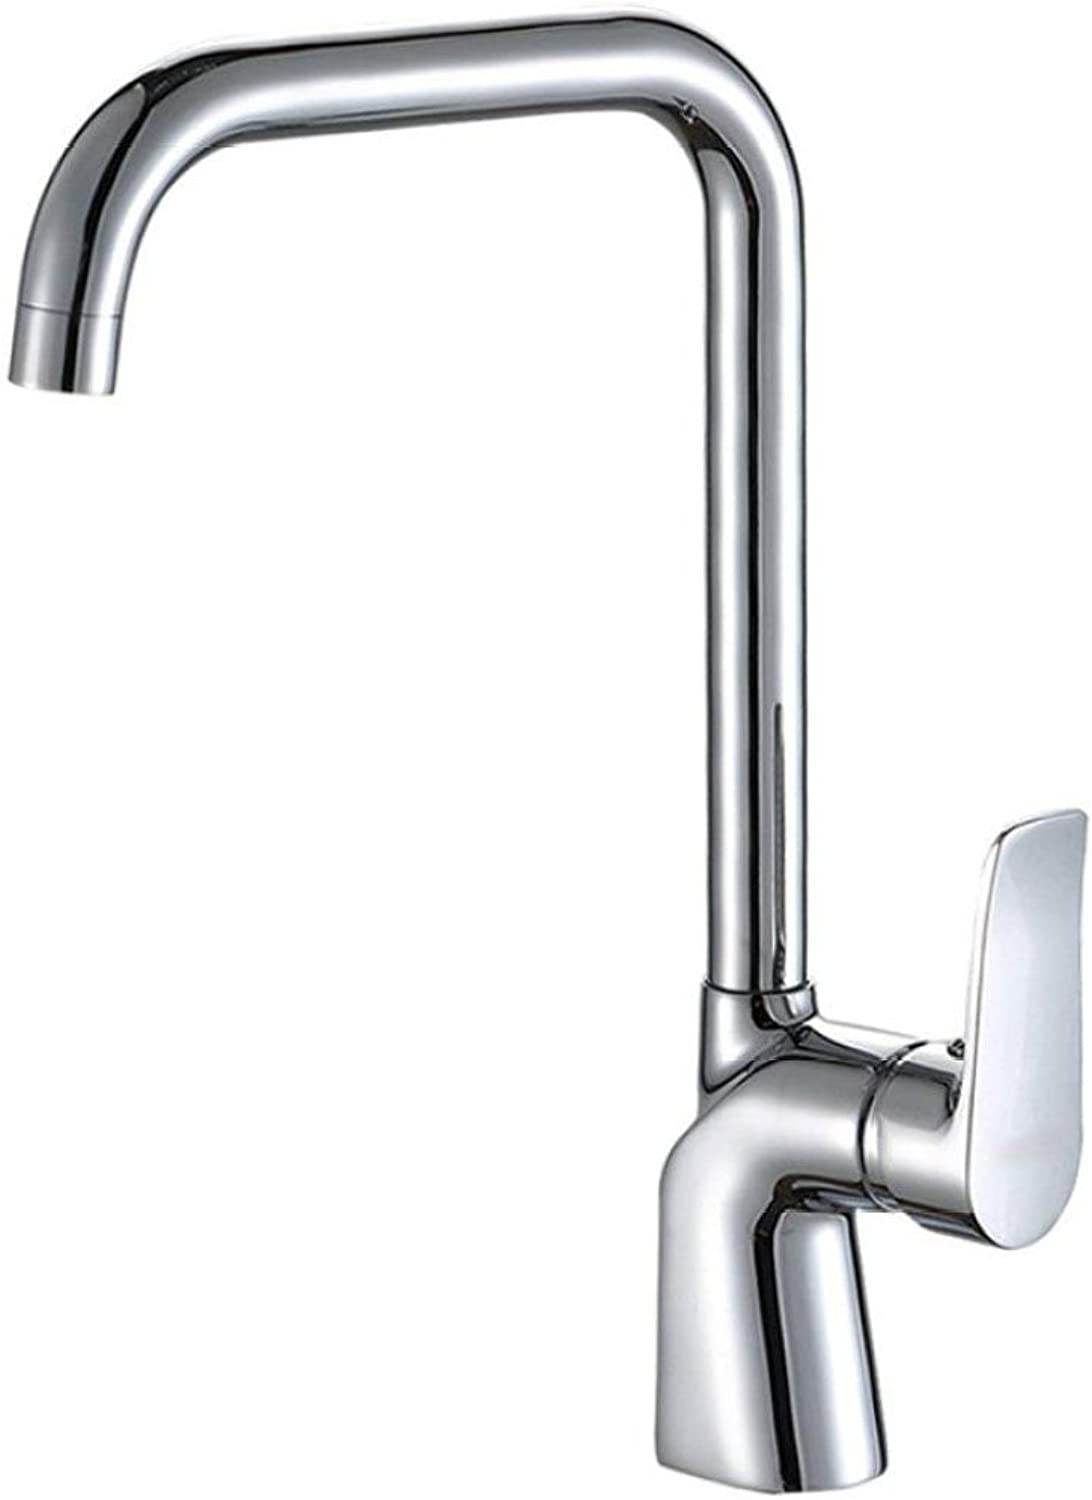 Ceramic valve core hot and cold greenical kitchen basin faucet weighted thickened sink faucet